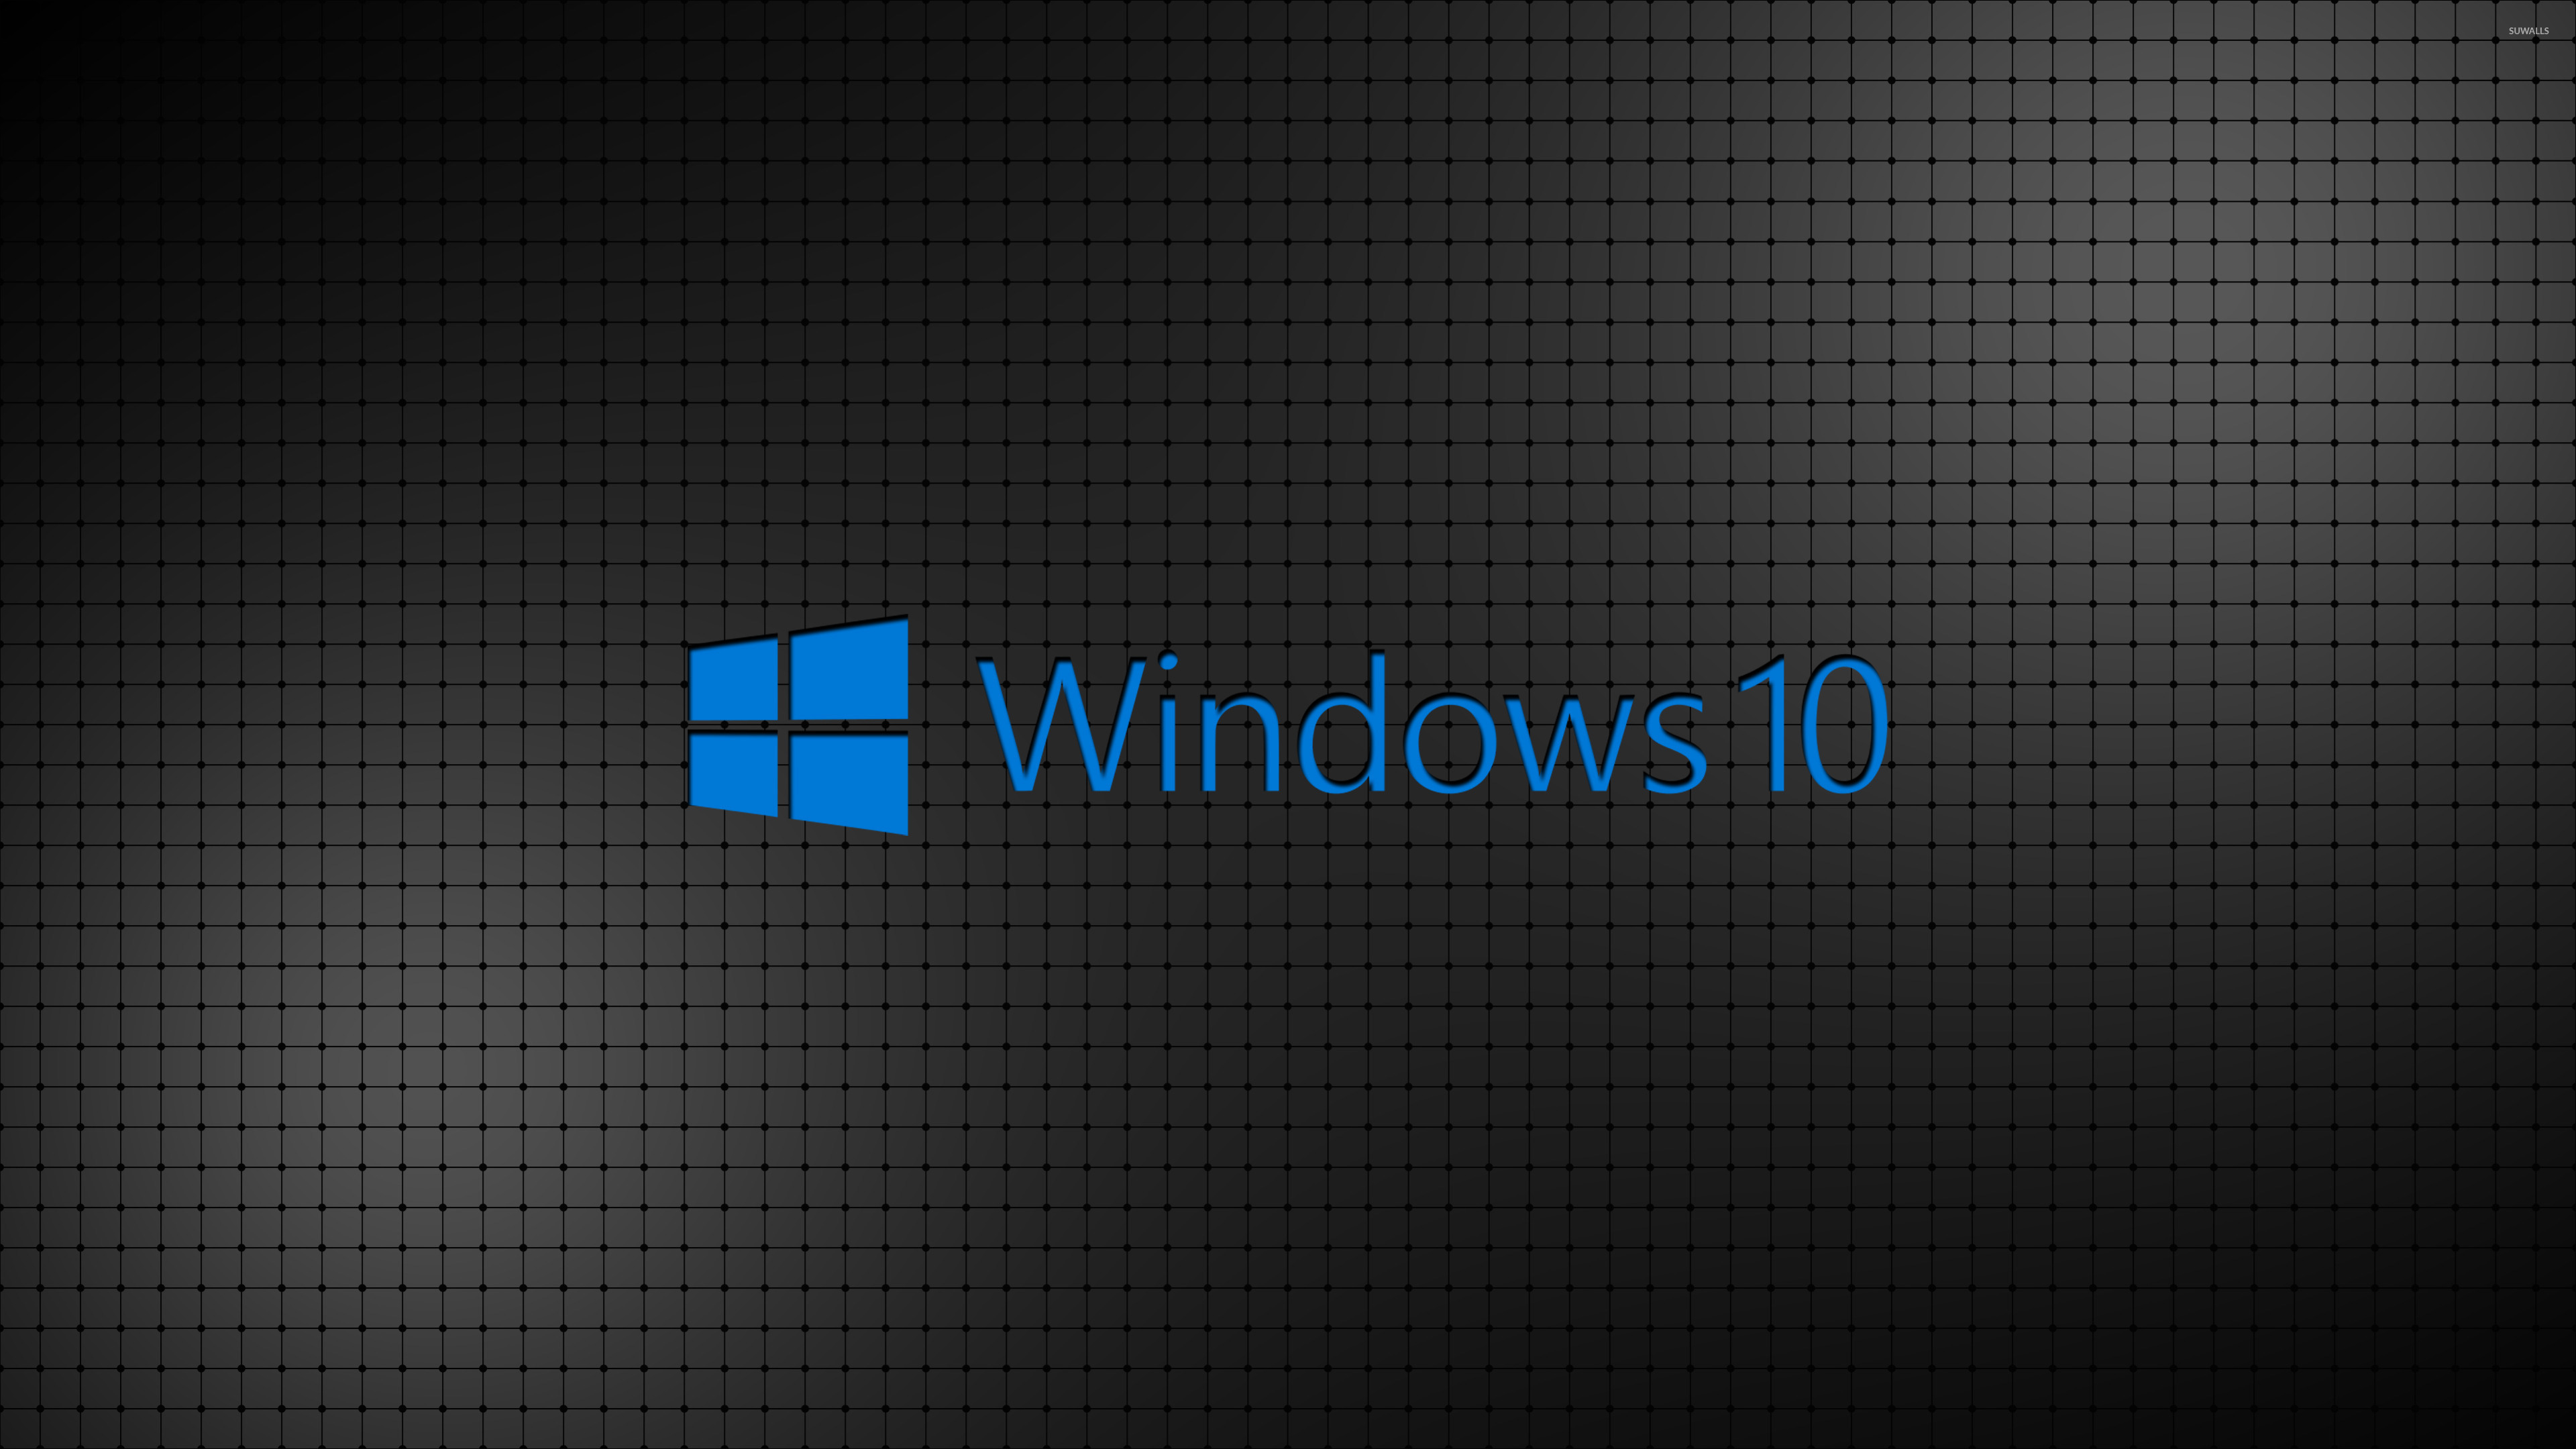 Windows 10 Blue Text Logo On A Grid Wallpaper